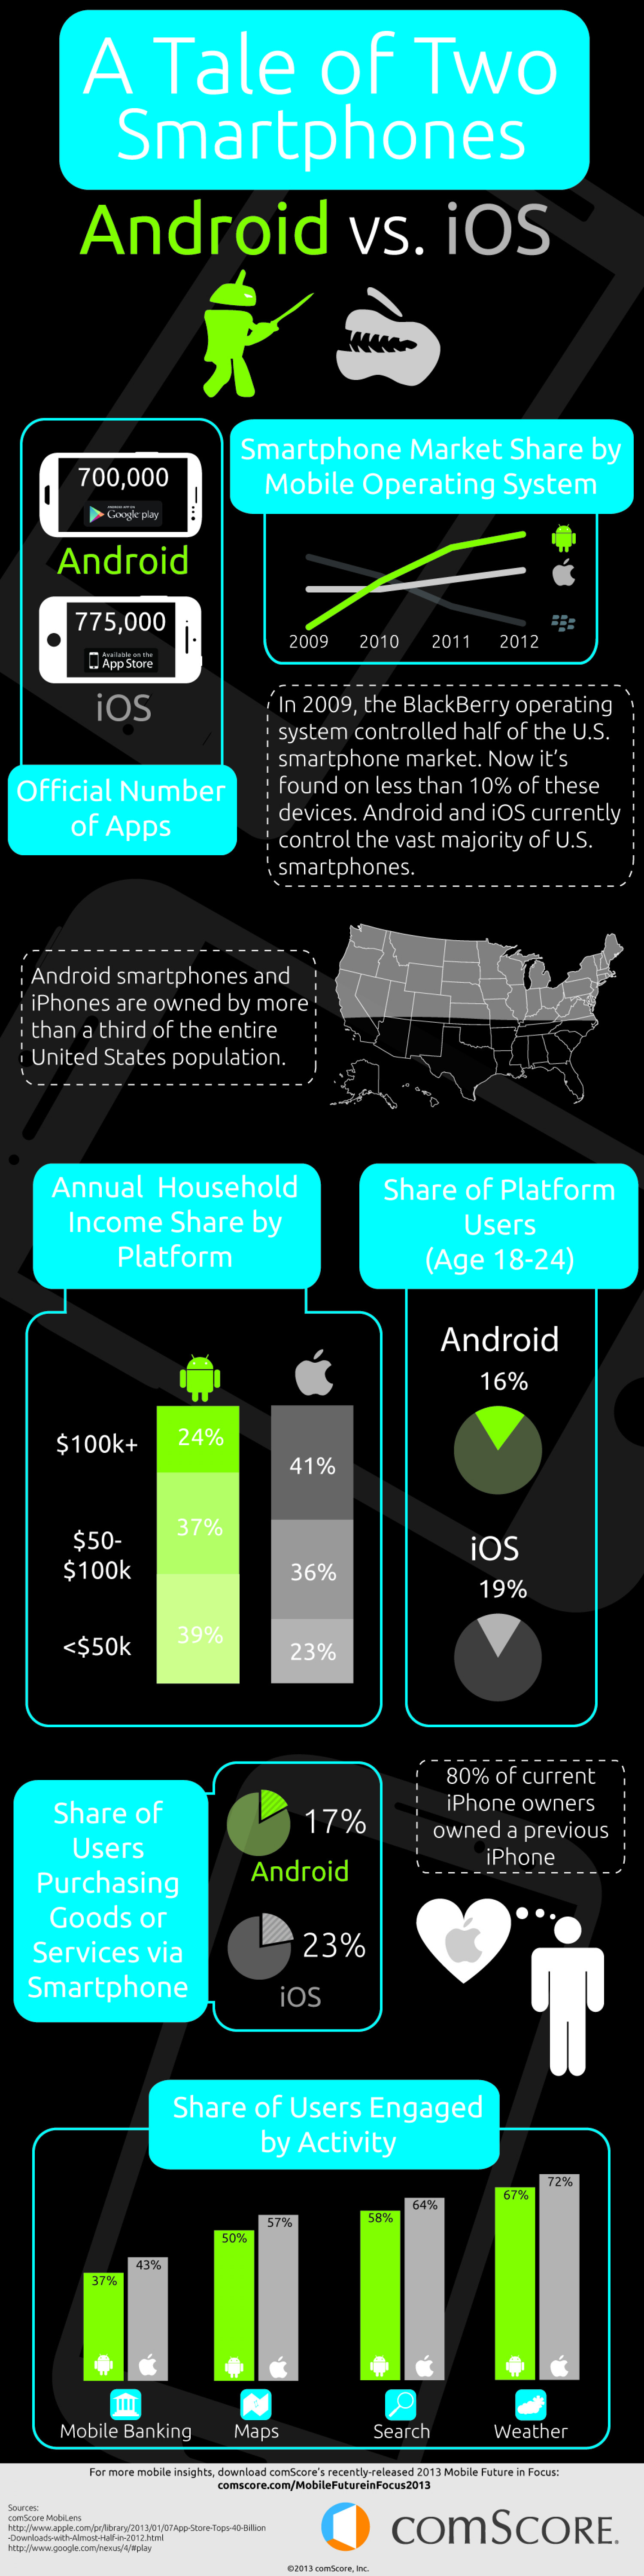 Android vs. iOS: User Differences Every Developer Should Know Infographic